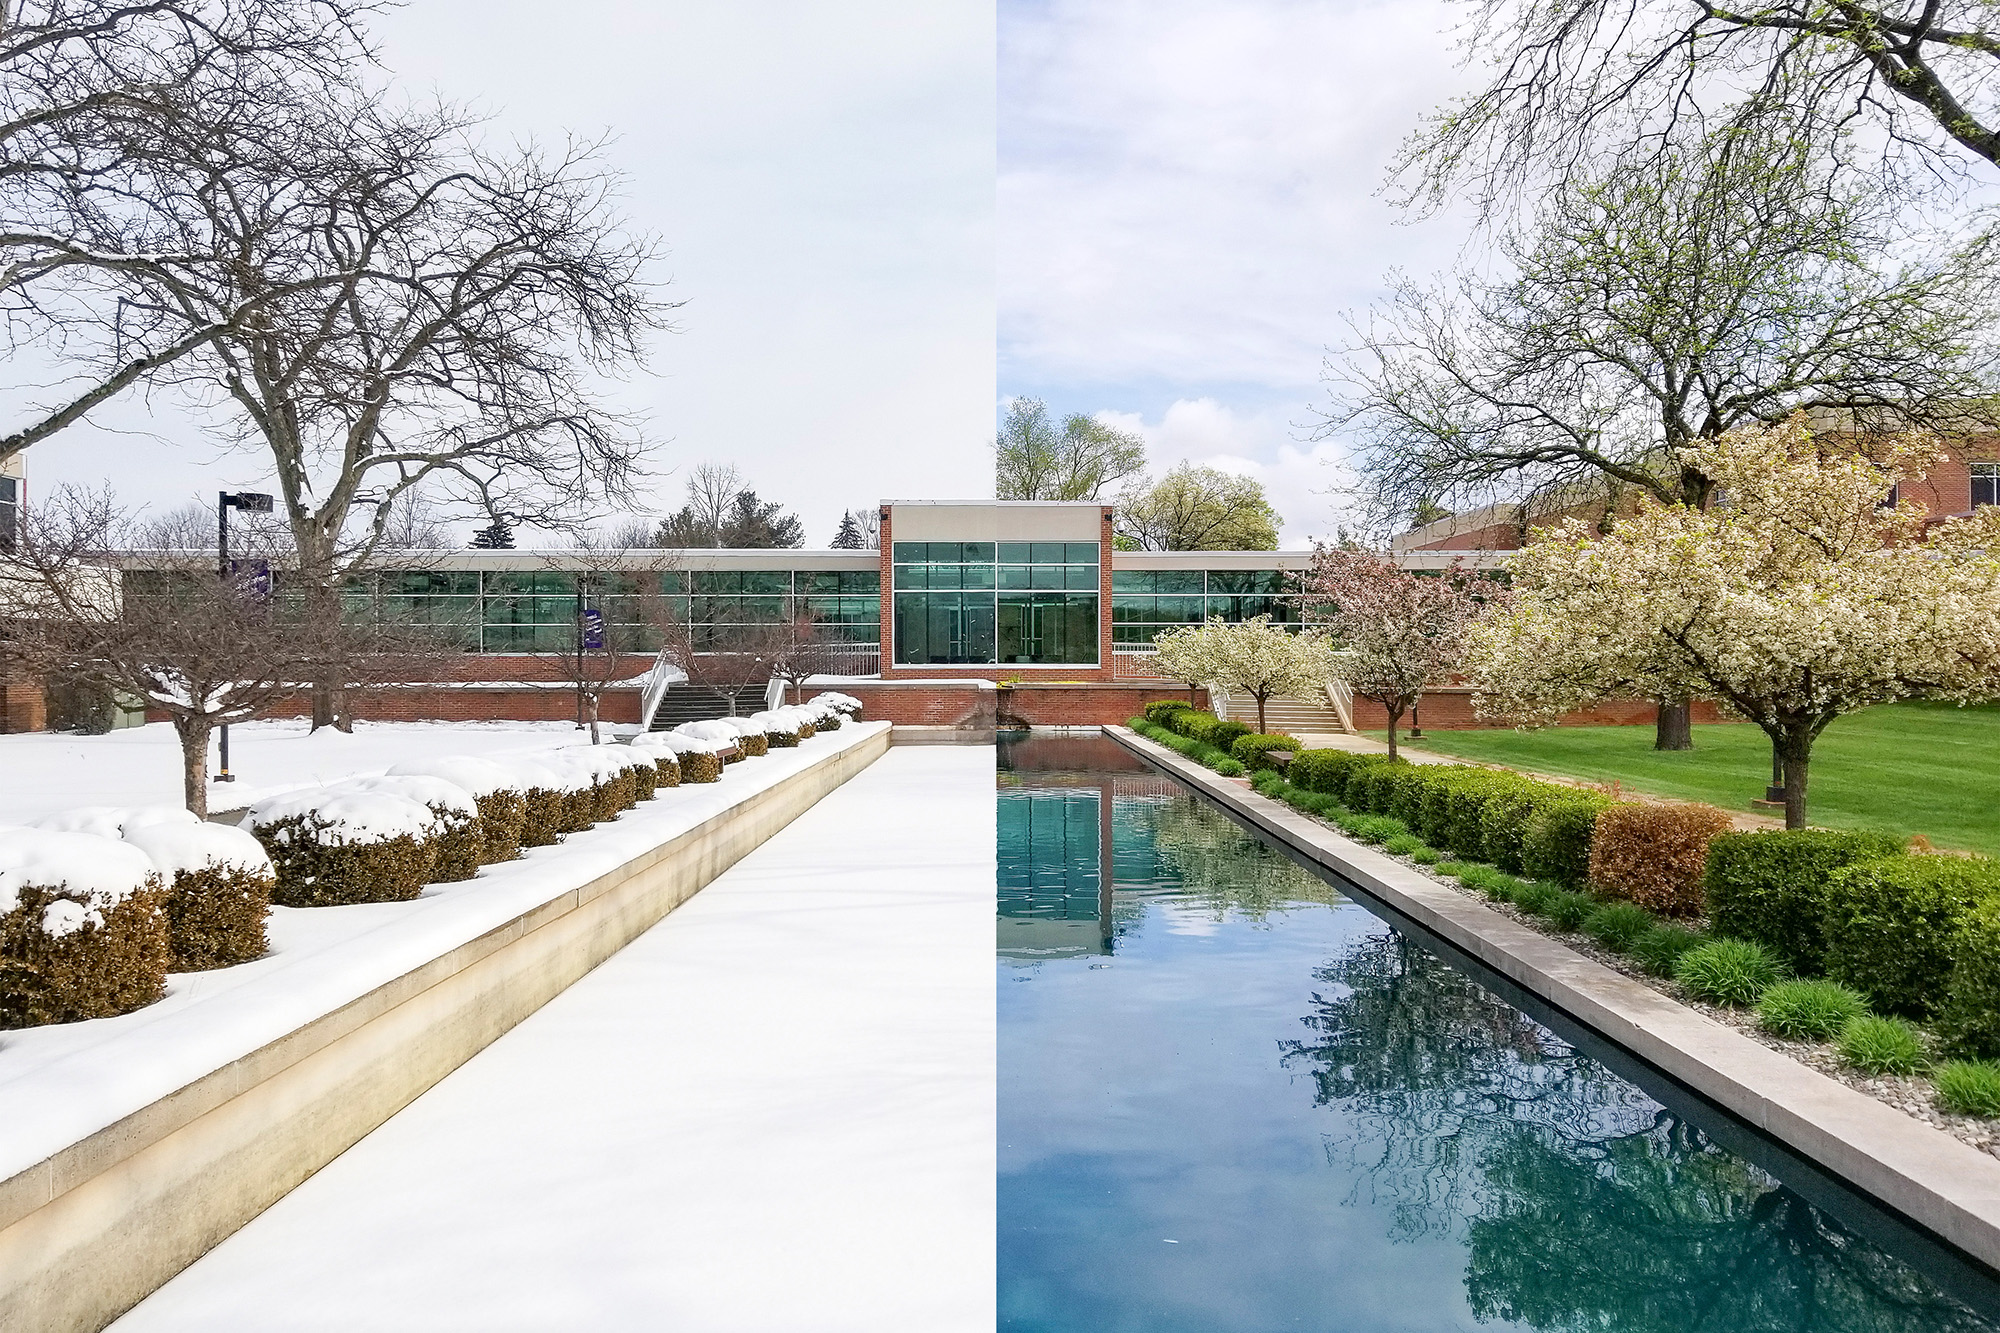 An external view of the entrance to KCC's North Avenue campus looking over the reflecting pools; half snow-covered in winter and half green and sunny in spring.